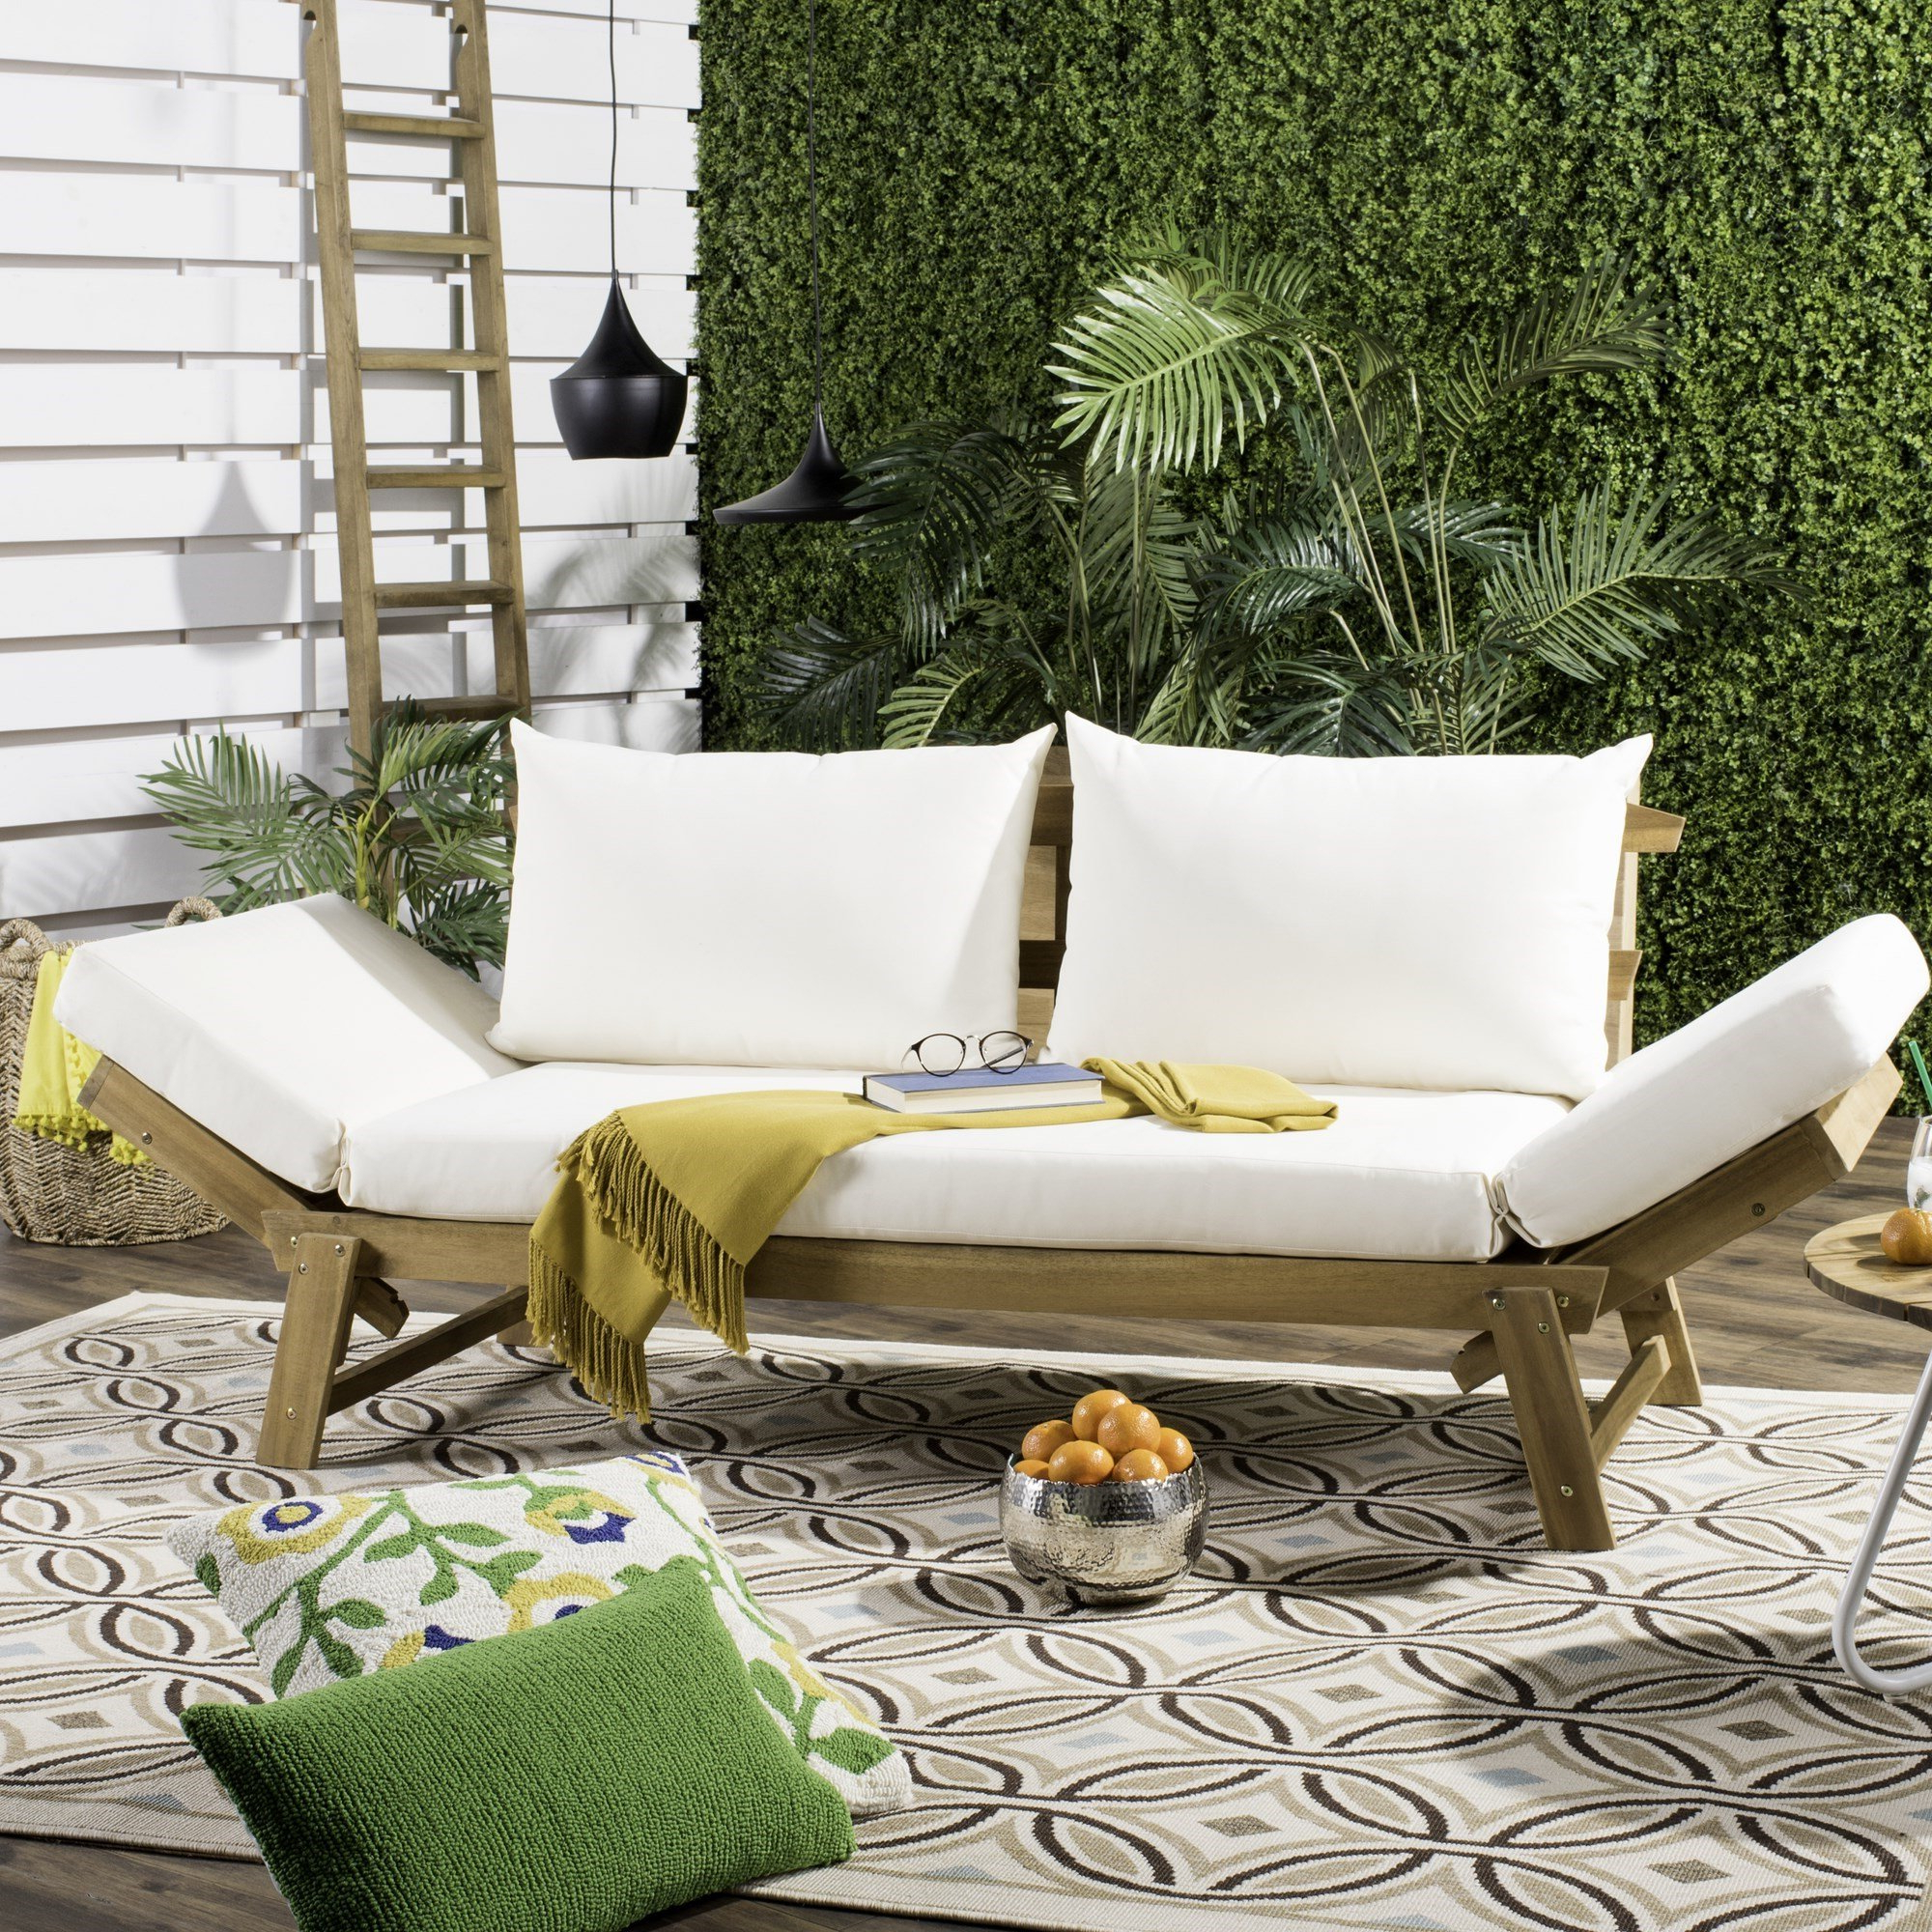 Freeport Patio Daybeds With Cushion Intended For Current Birch Lane™ Heritage Beal Patio Daybed With Cushions (View 15 of 20)